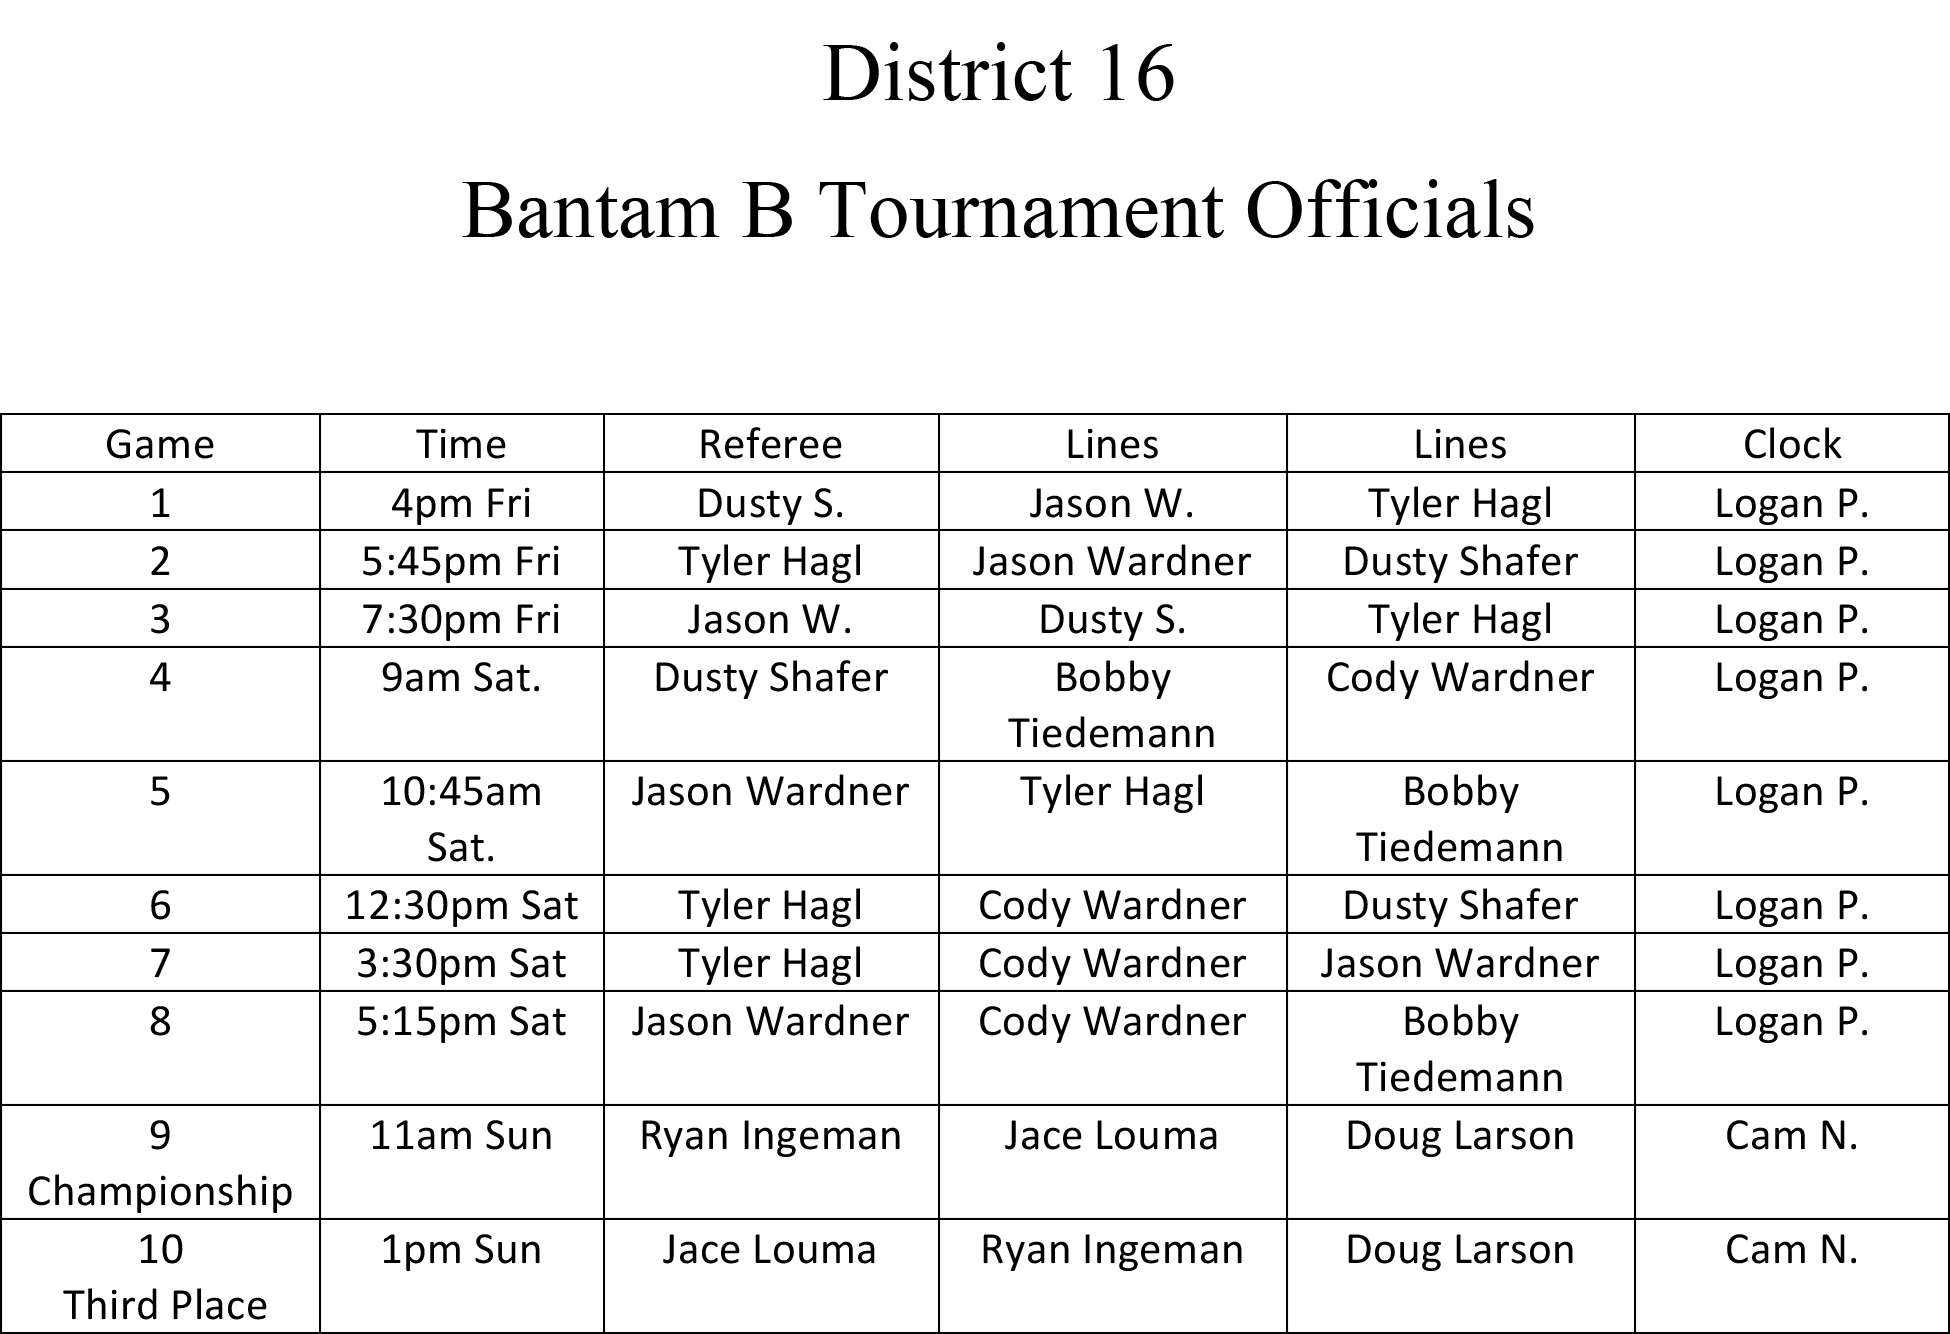 Bantam B District Officials